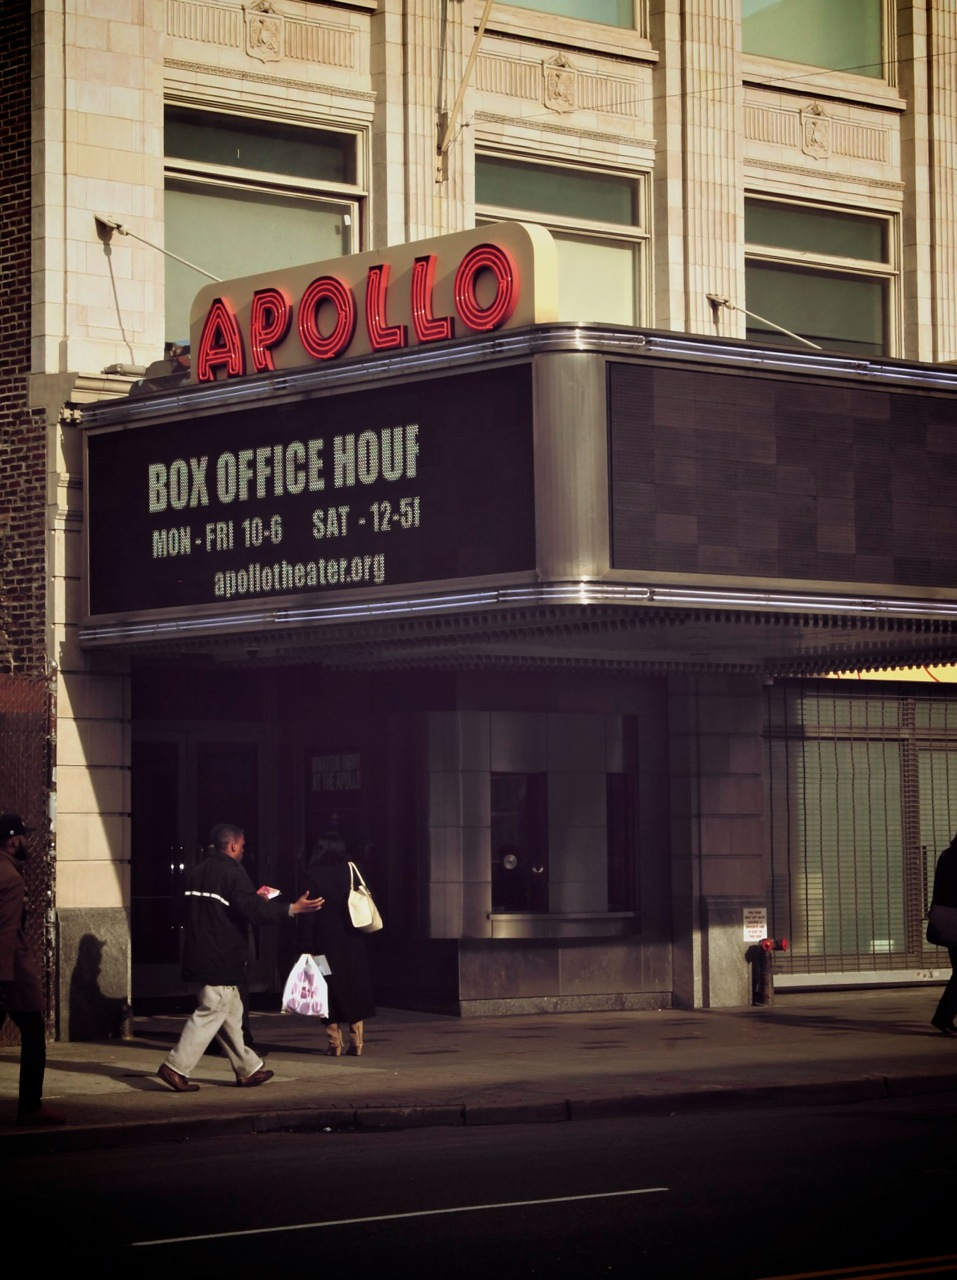 Slideshow: The Apollo Theatre